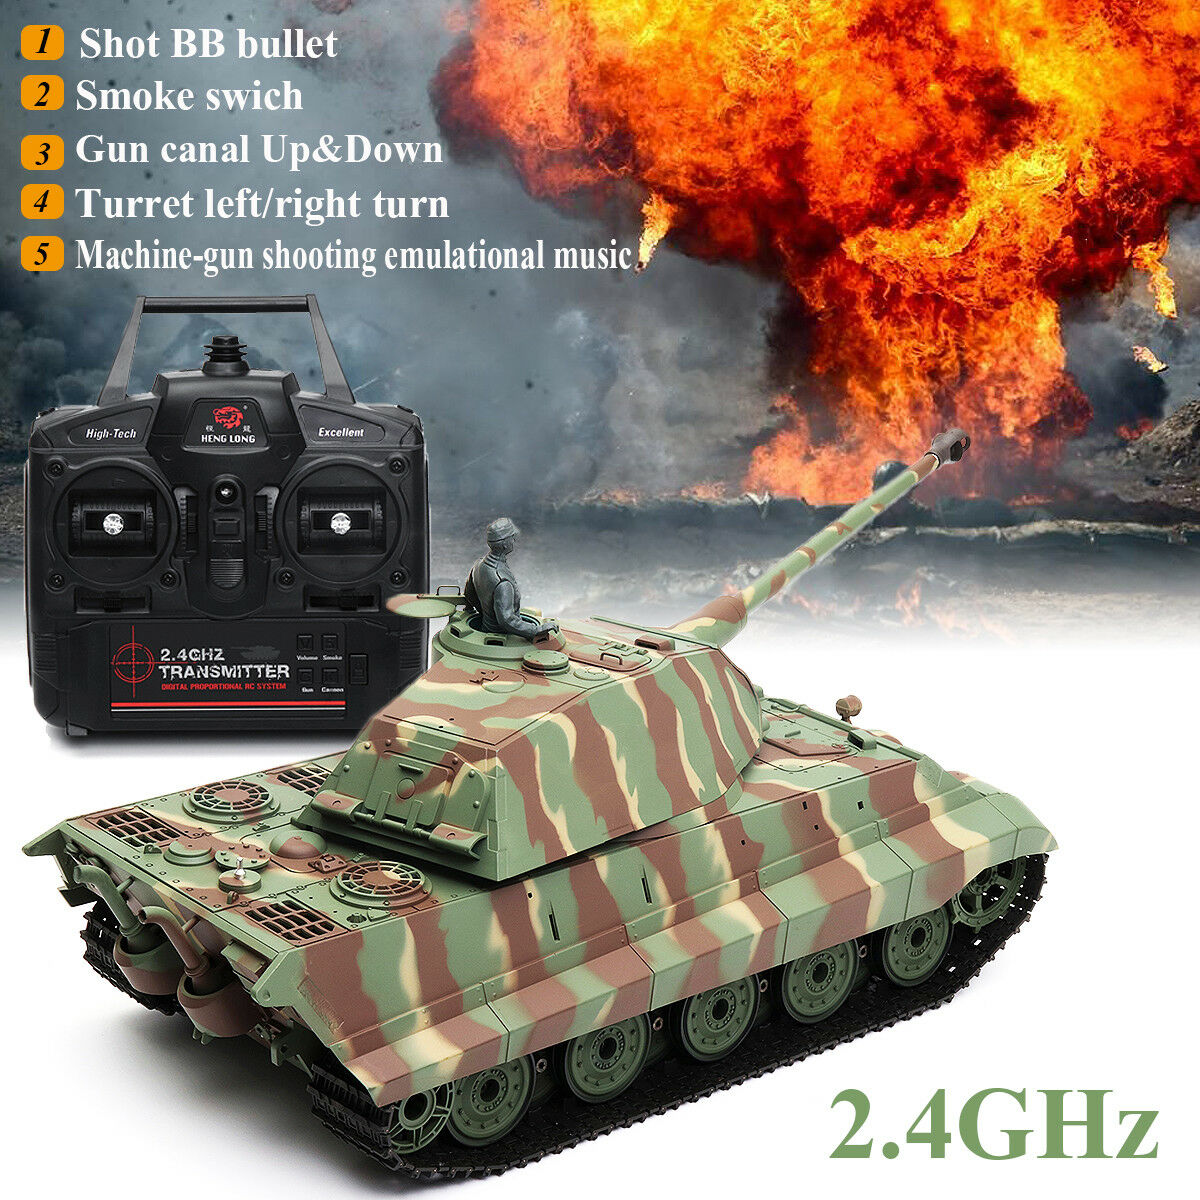 Radio Remote Control RC Tank with BB Firing Realistic Sound LARGE Heng Long 1 16